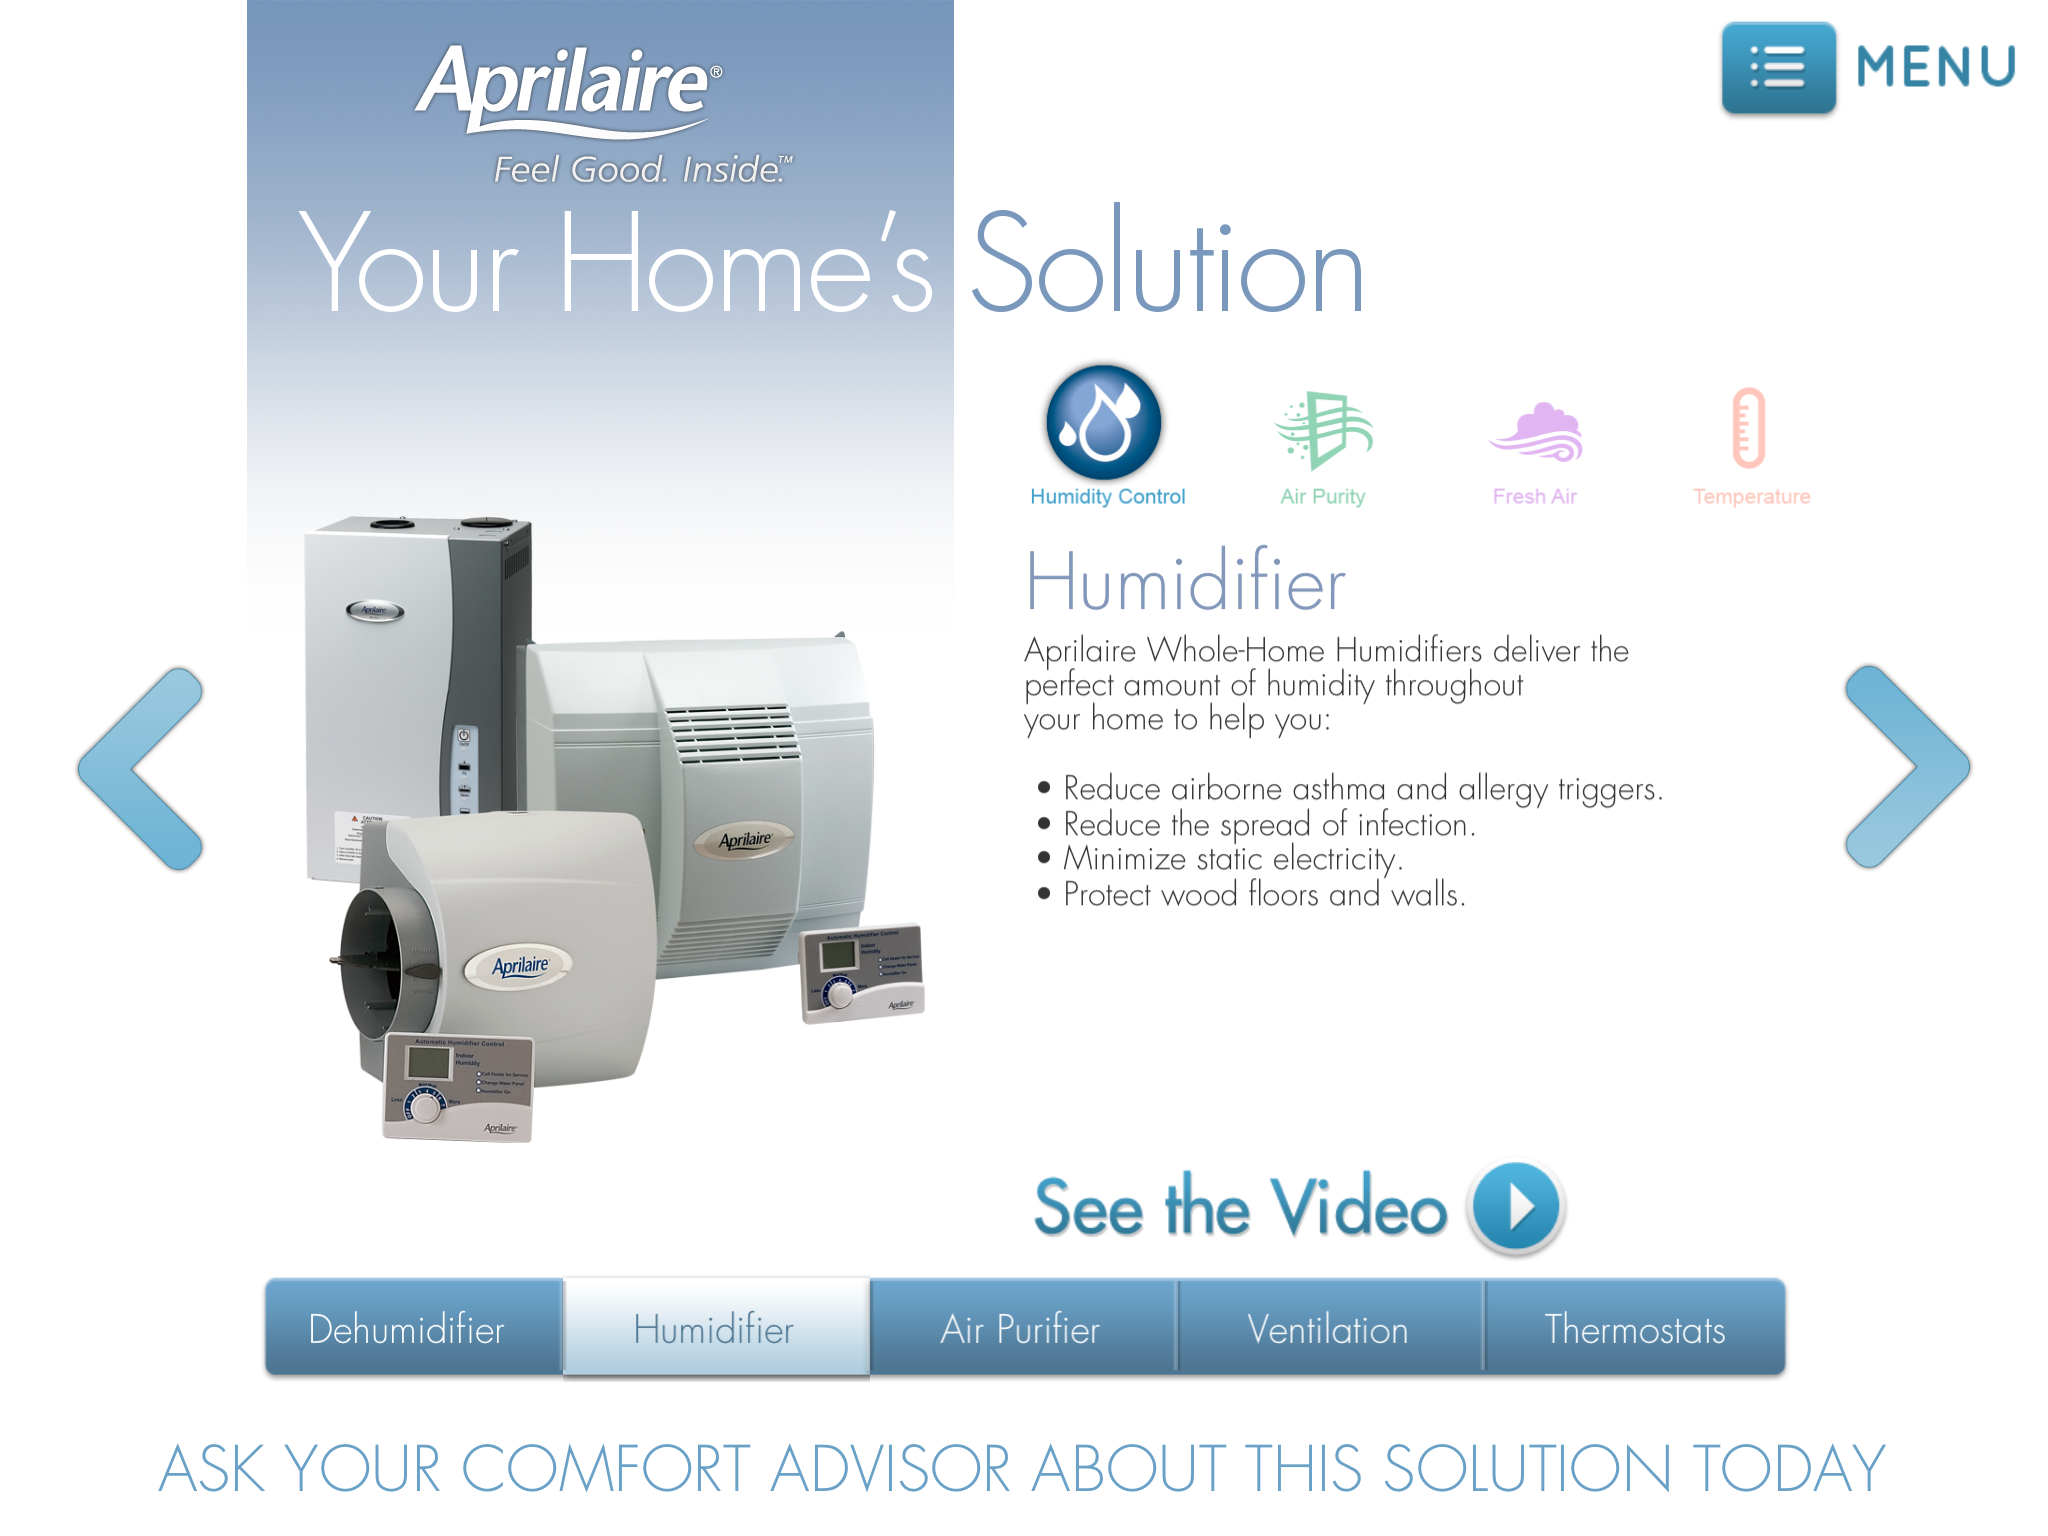 Aprilaire Feel Good. Inside Humidifier, Clean mama